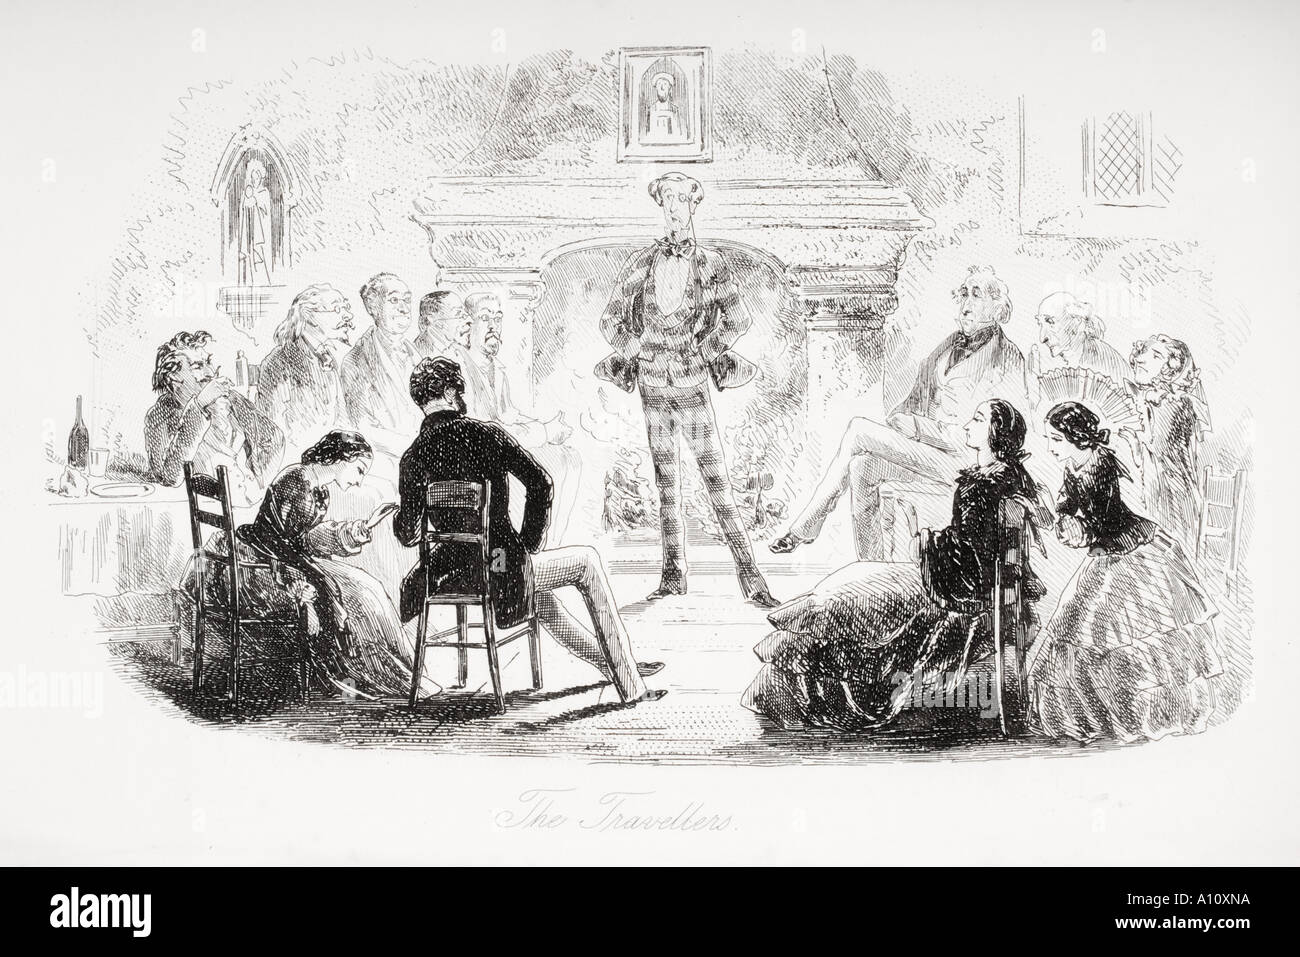 david copperfield charles dickens illustration stock photos the travellers illustration from the charles dickens novel david copperfield by h k browne known as phiz